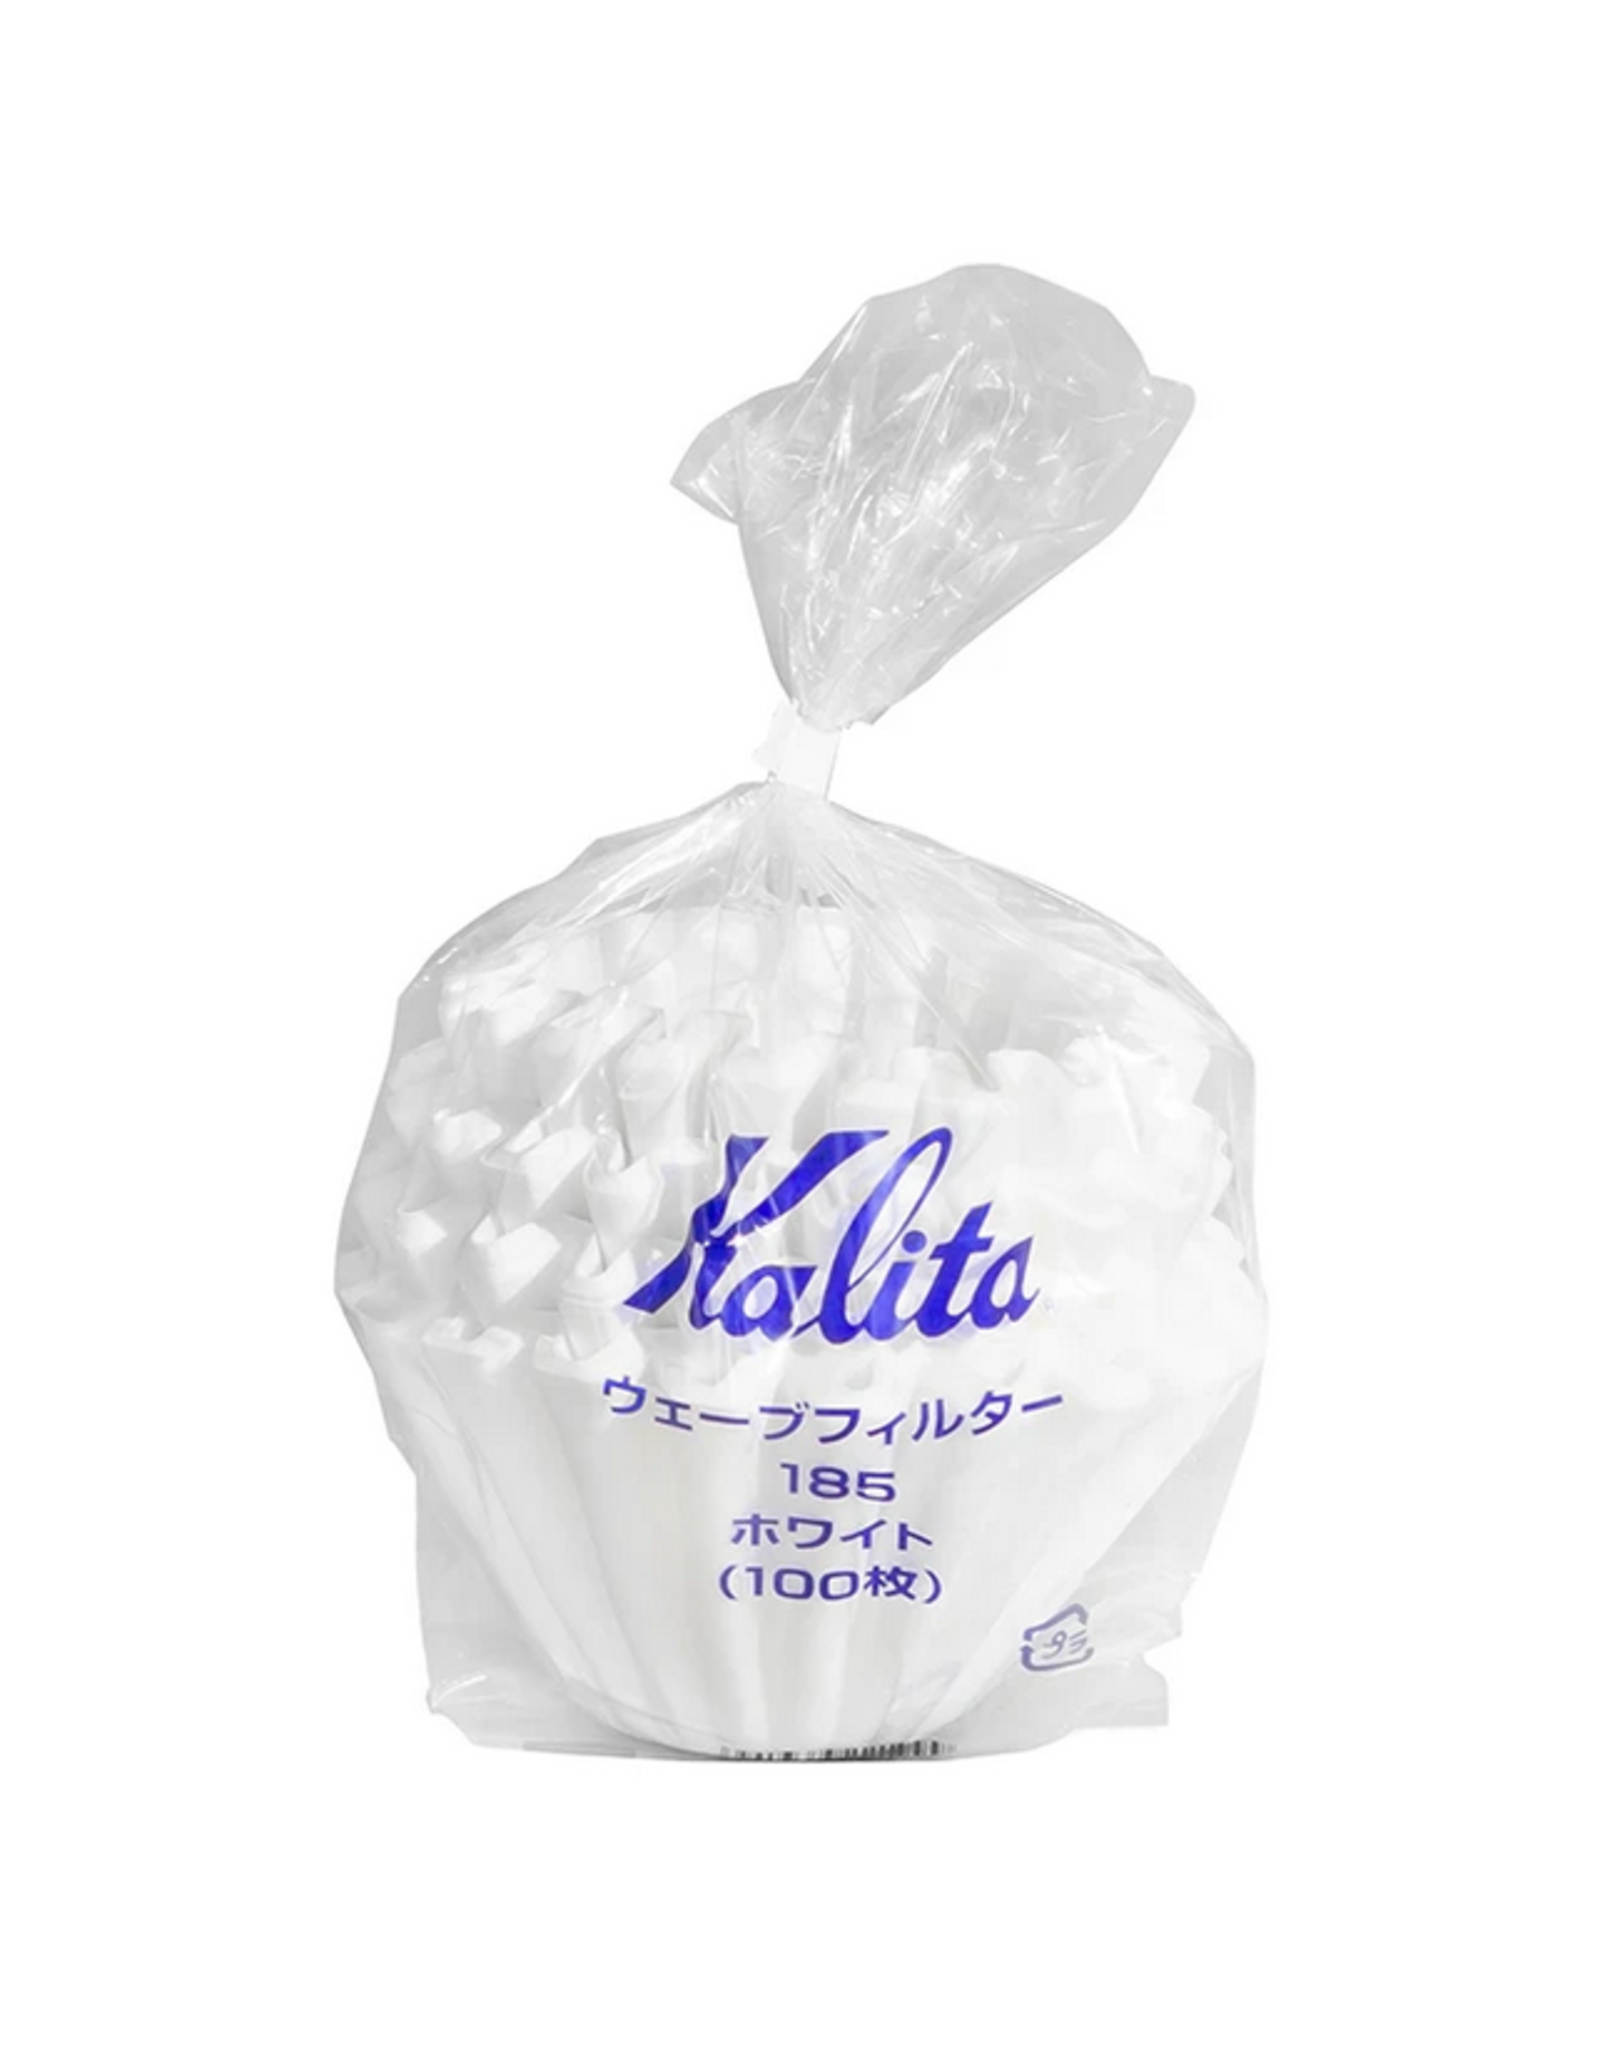 Kalita Kalita Wave 185 Filters White 100 pack